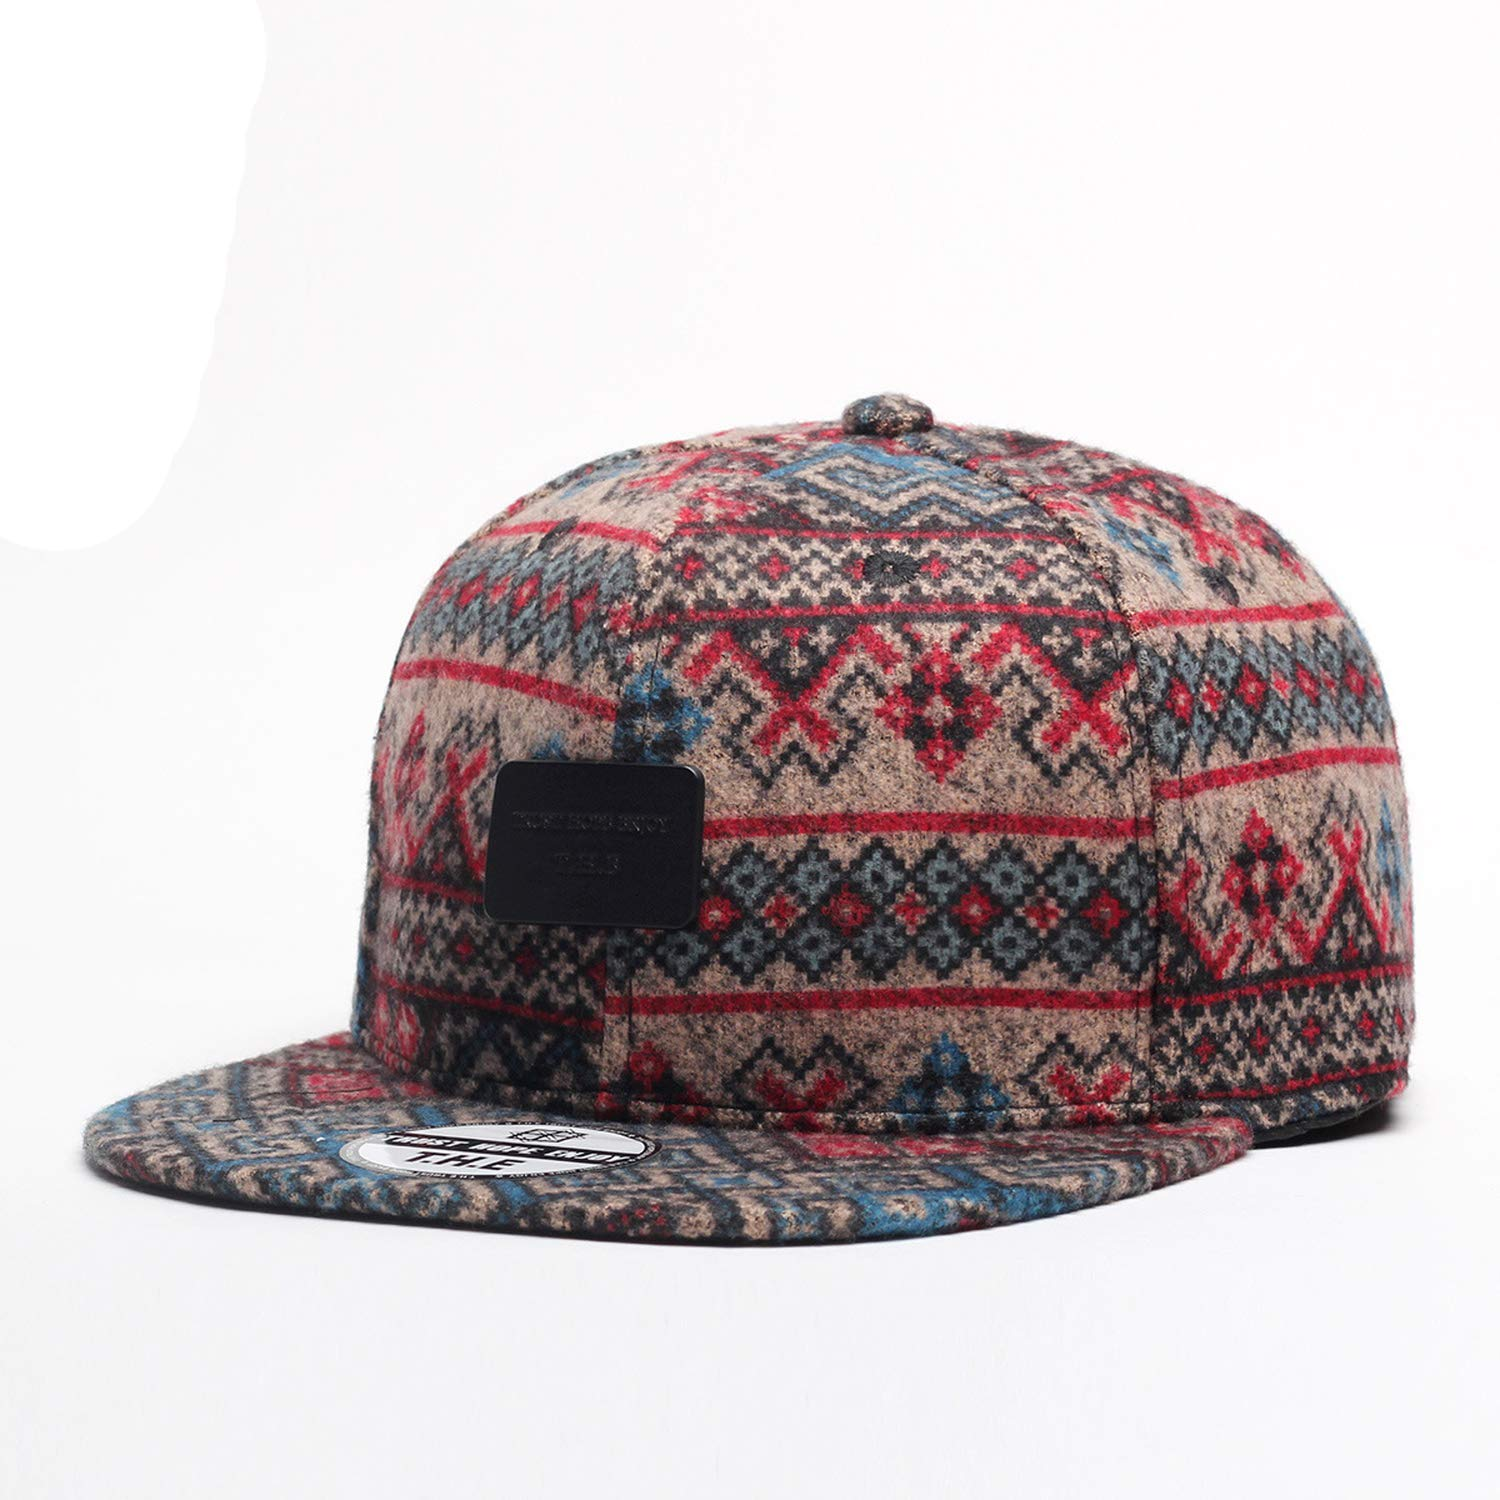 Cotton Hip hop Cap Baseball Caps for Street Dance National Wind Cap for Adult Winter Snapback Fashion Hat